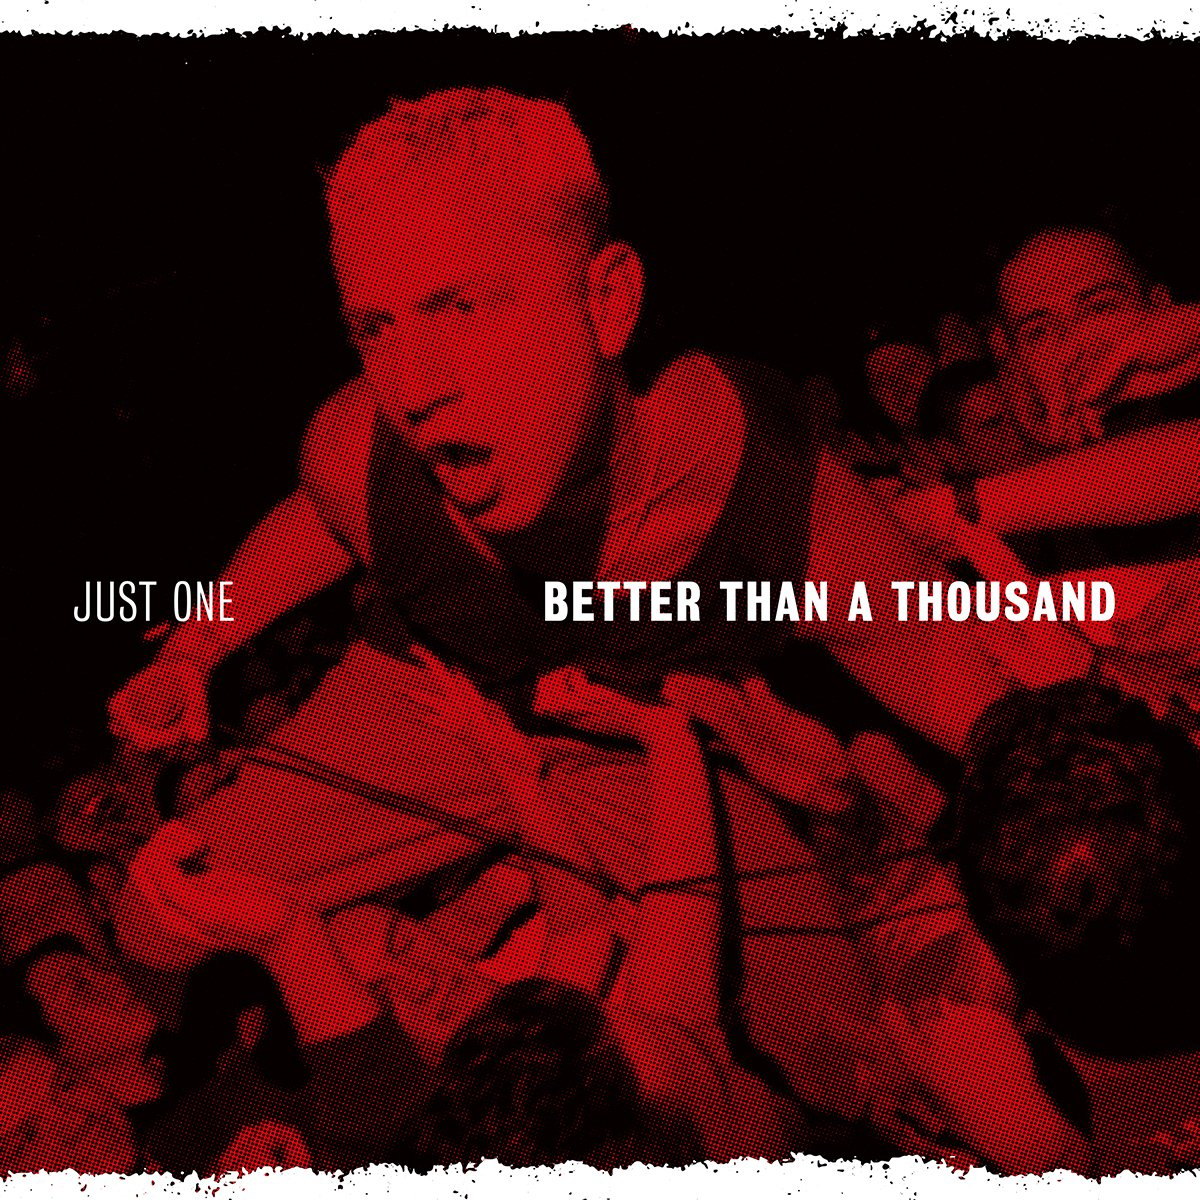 BETTER THAN A THOUSAND 'Just One' LP